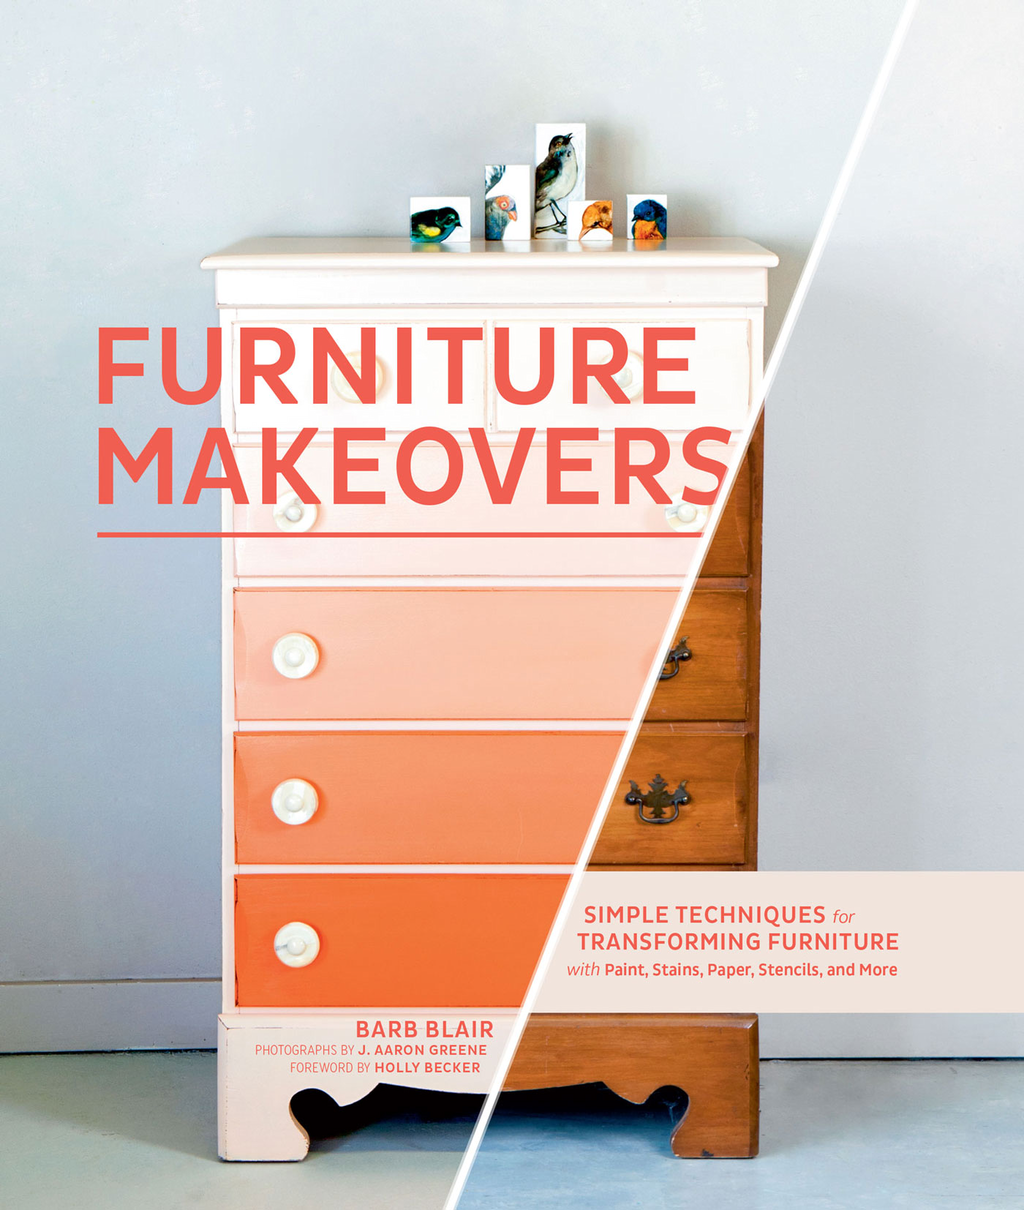 Furniture Makeovers